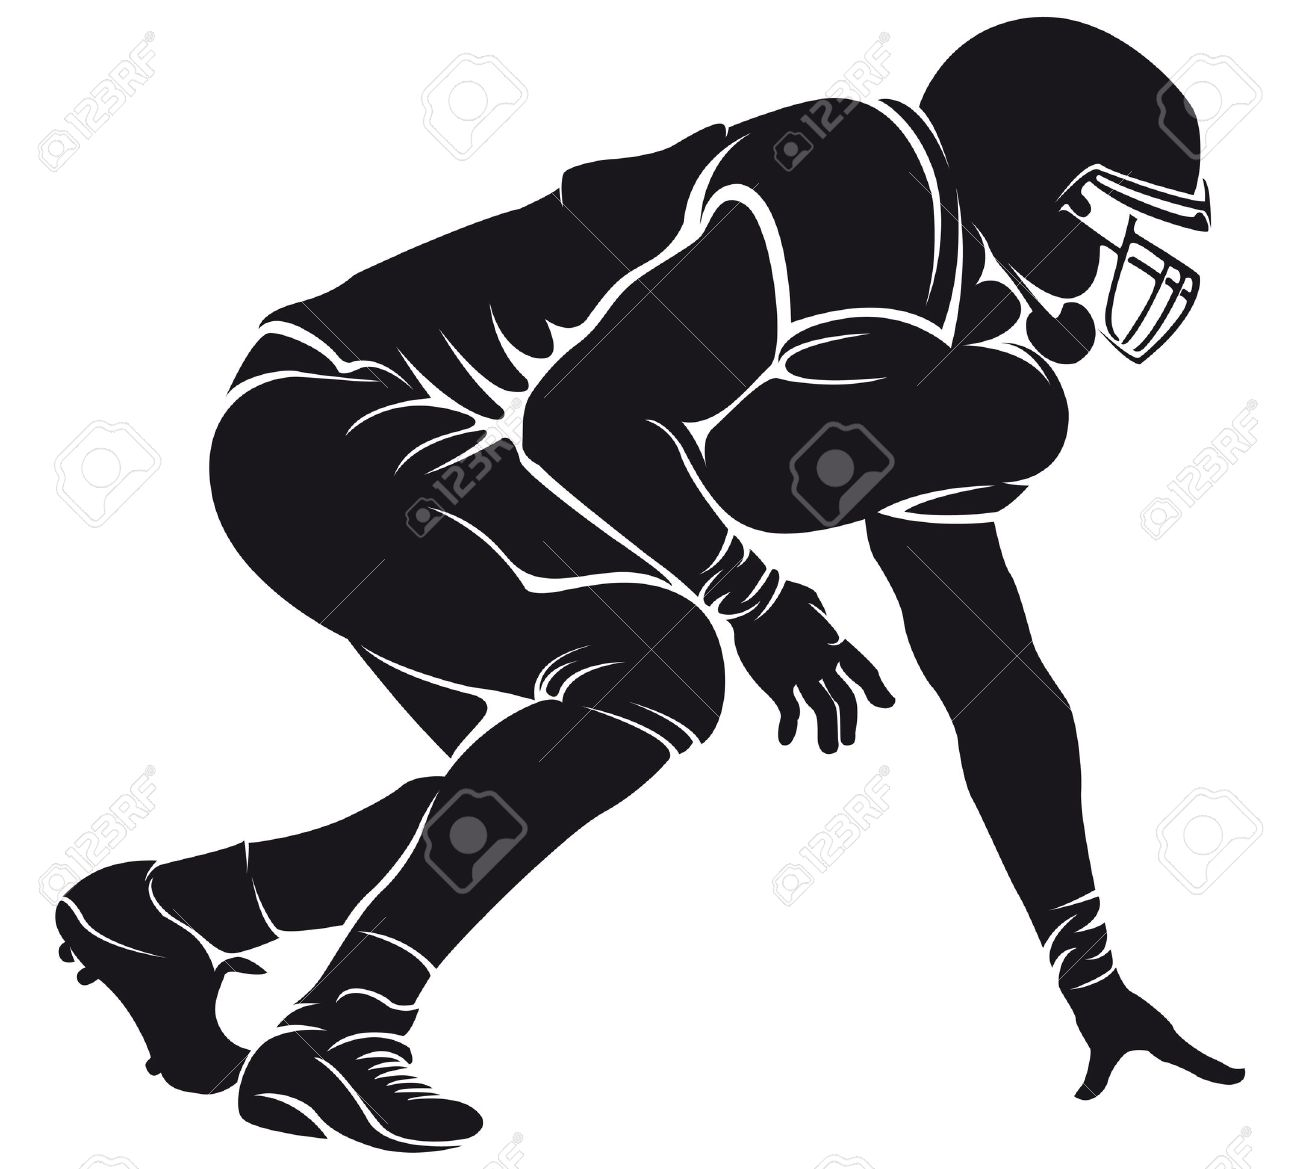 Best Football Player Clipart Black And White #21020.